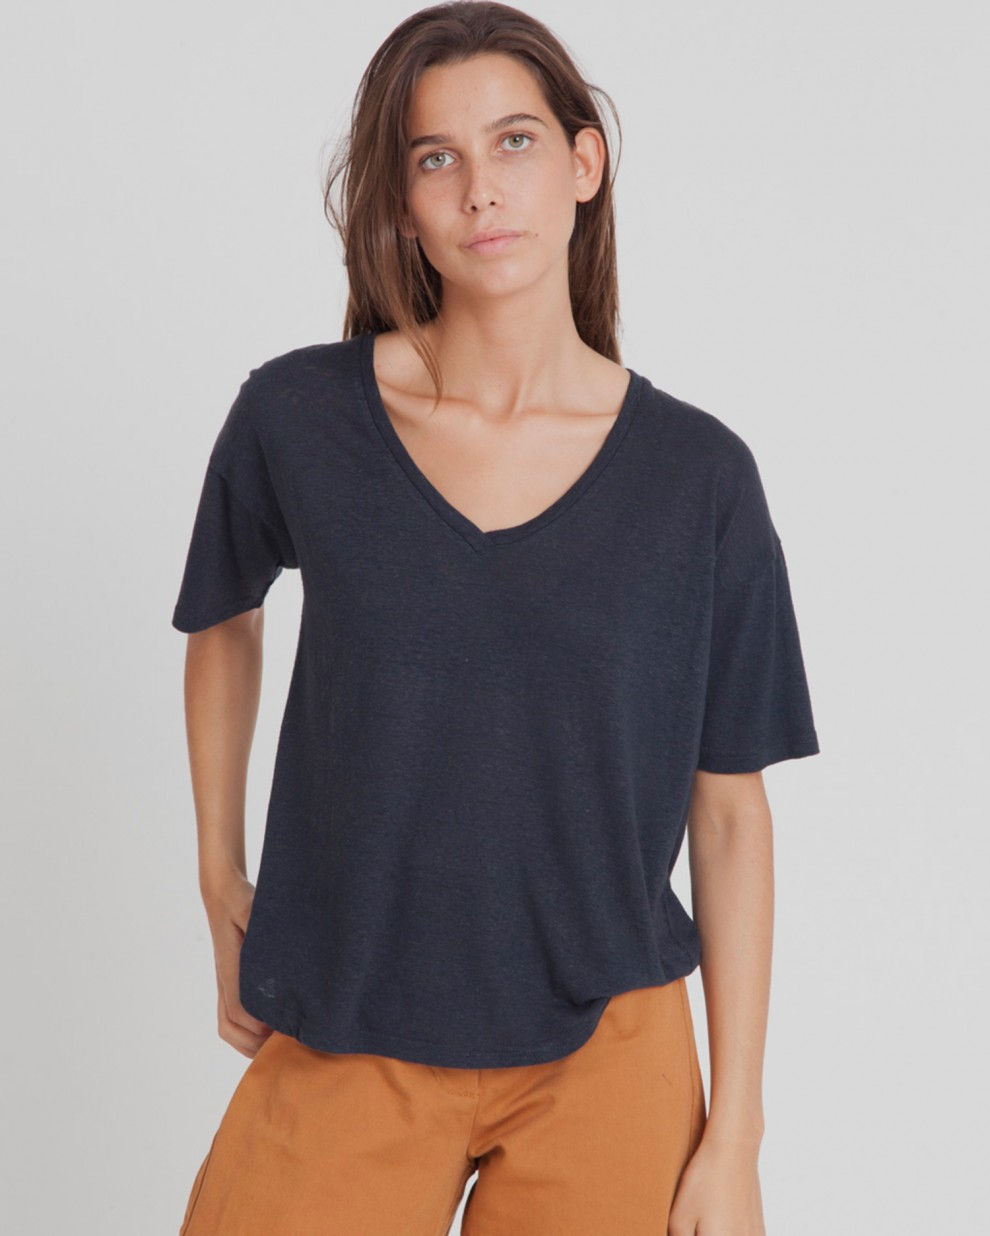 Dark Blue Hemp V-neck Tee